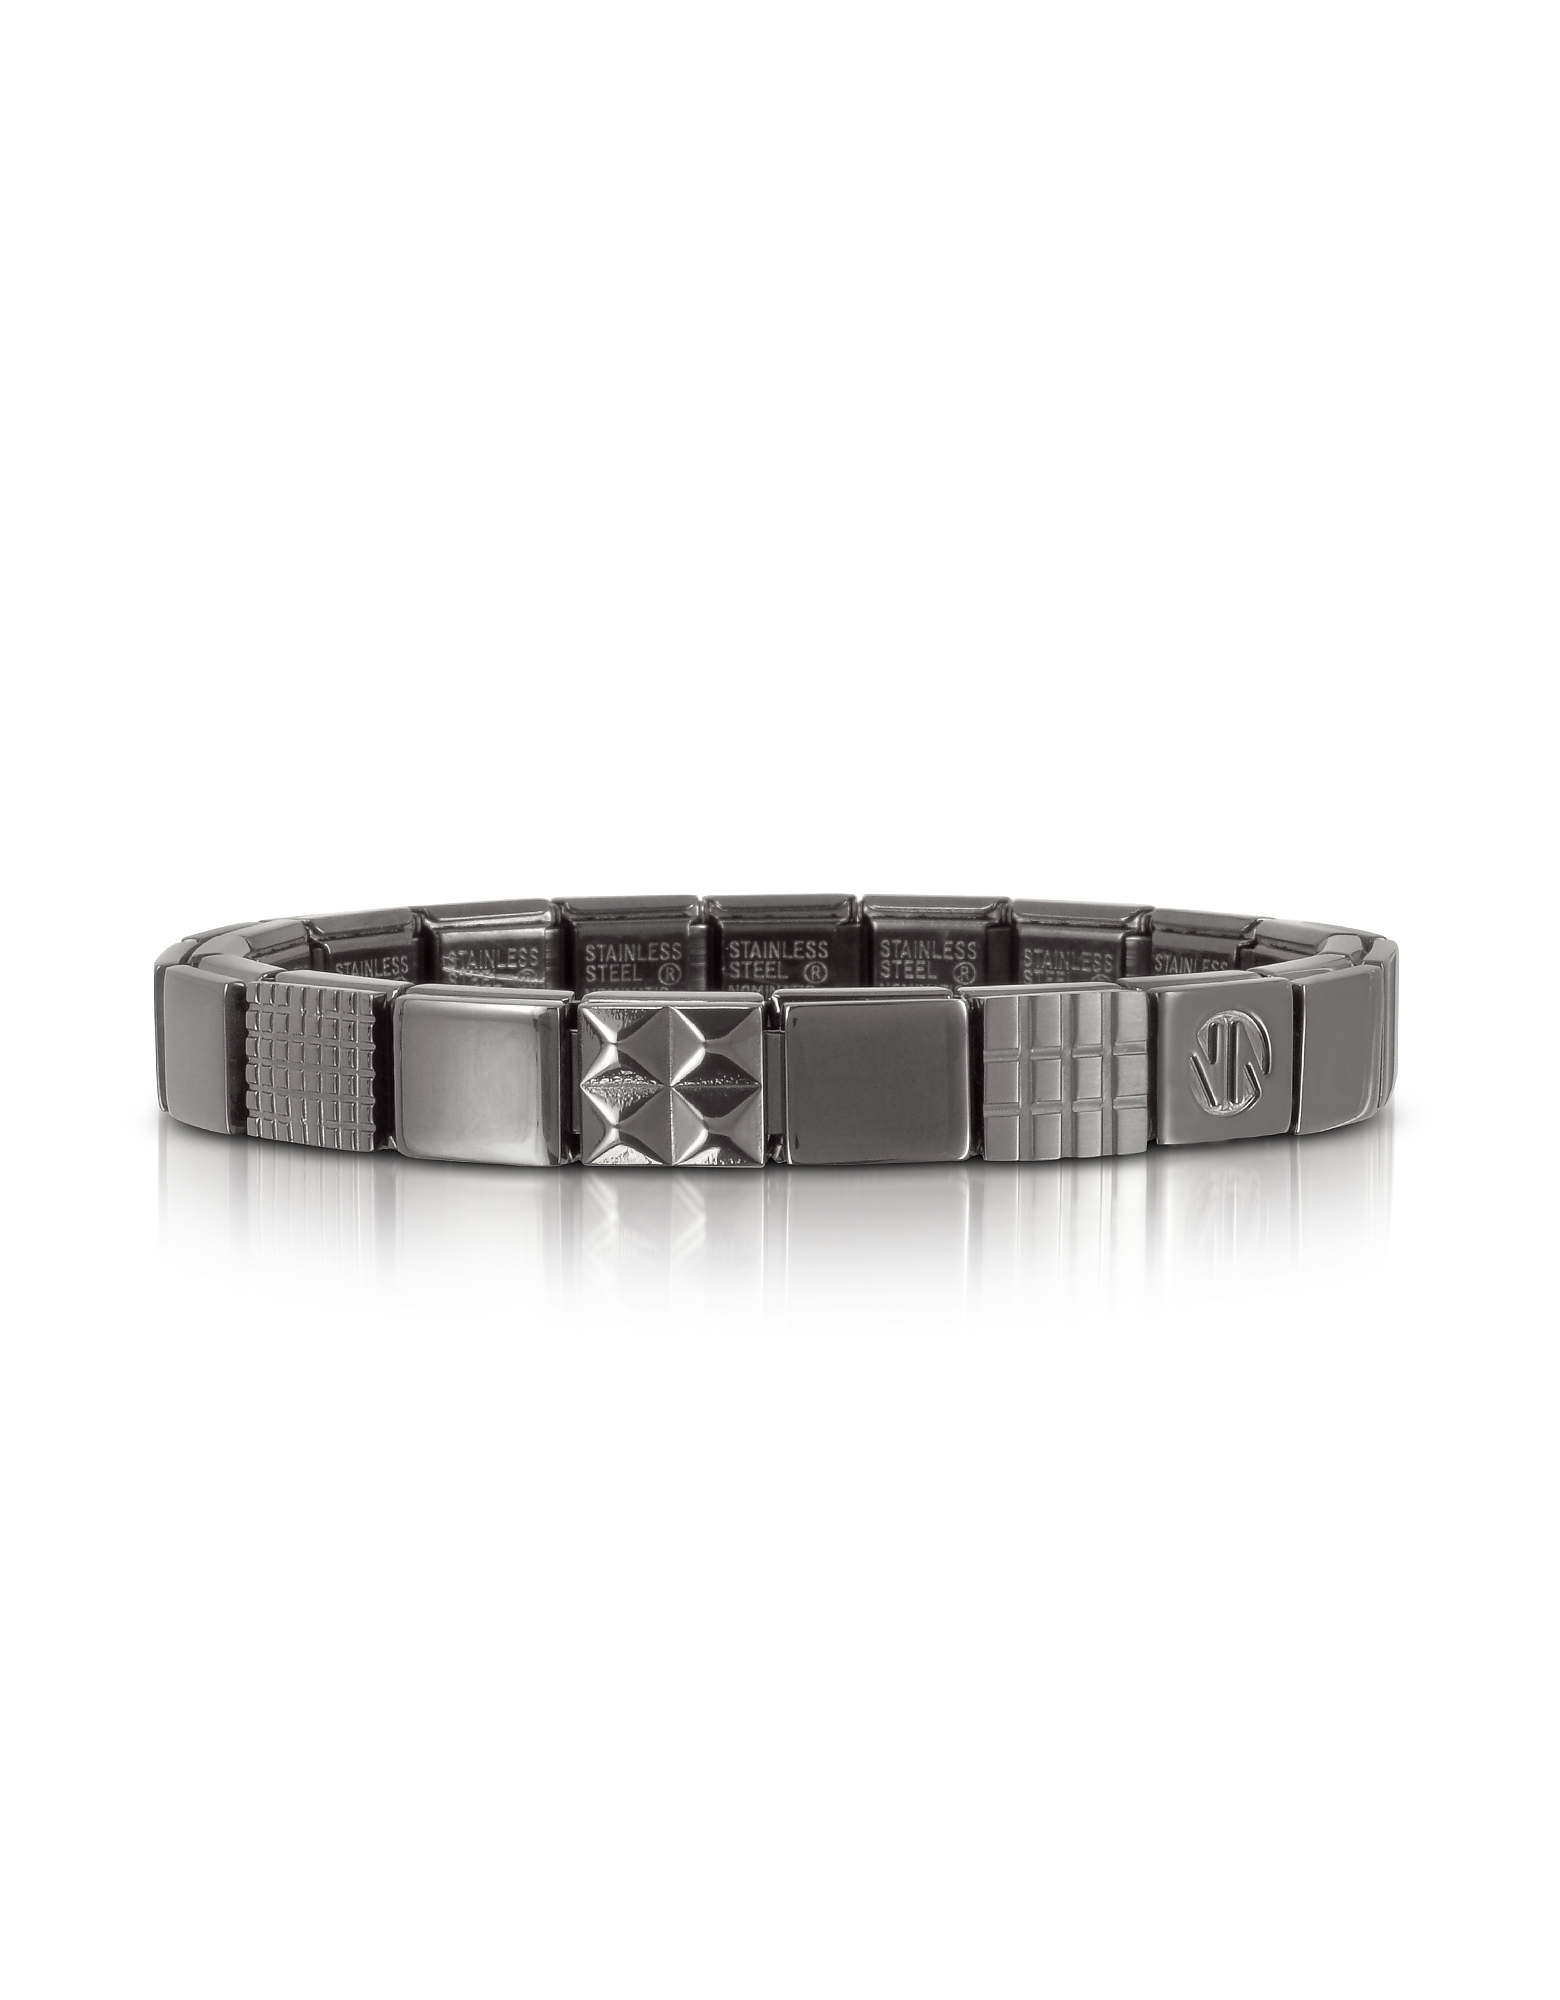 Nomination Men's Bracelets, Steel Ikons Geometric Brushed Stainless Steel Bracelet